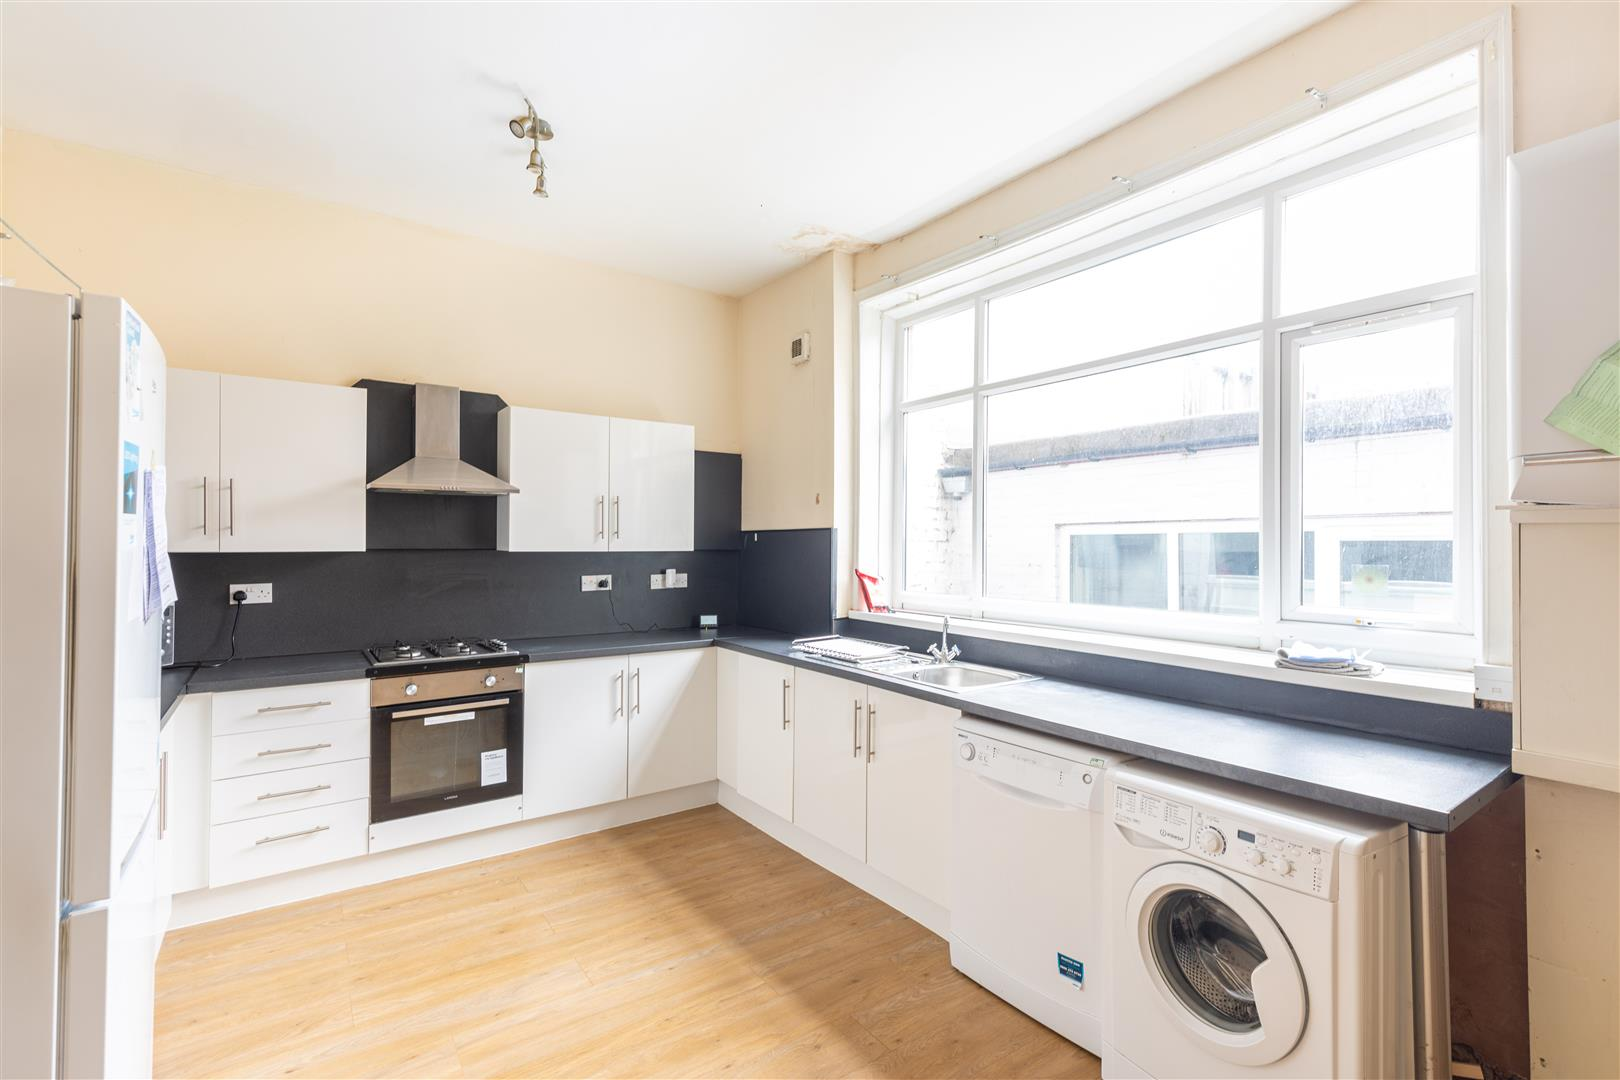 5 bed terraced house to rent in Newcastle Upon Tyne, NE6 5BT 5